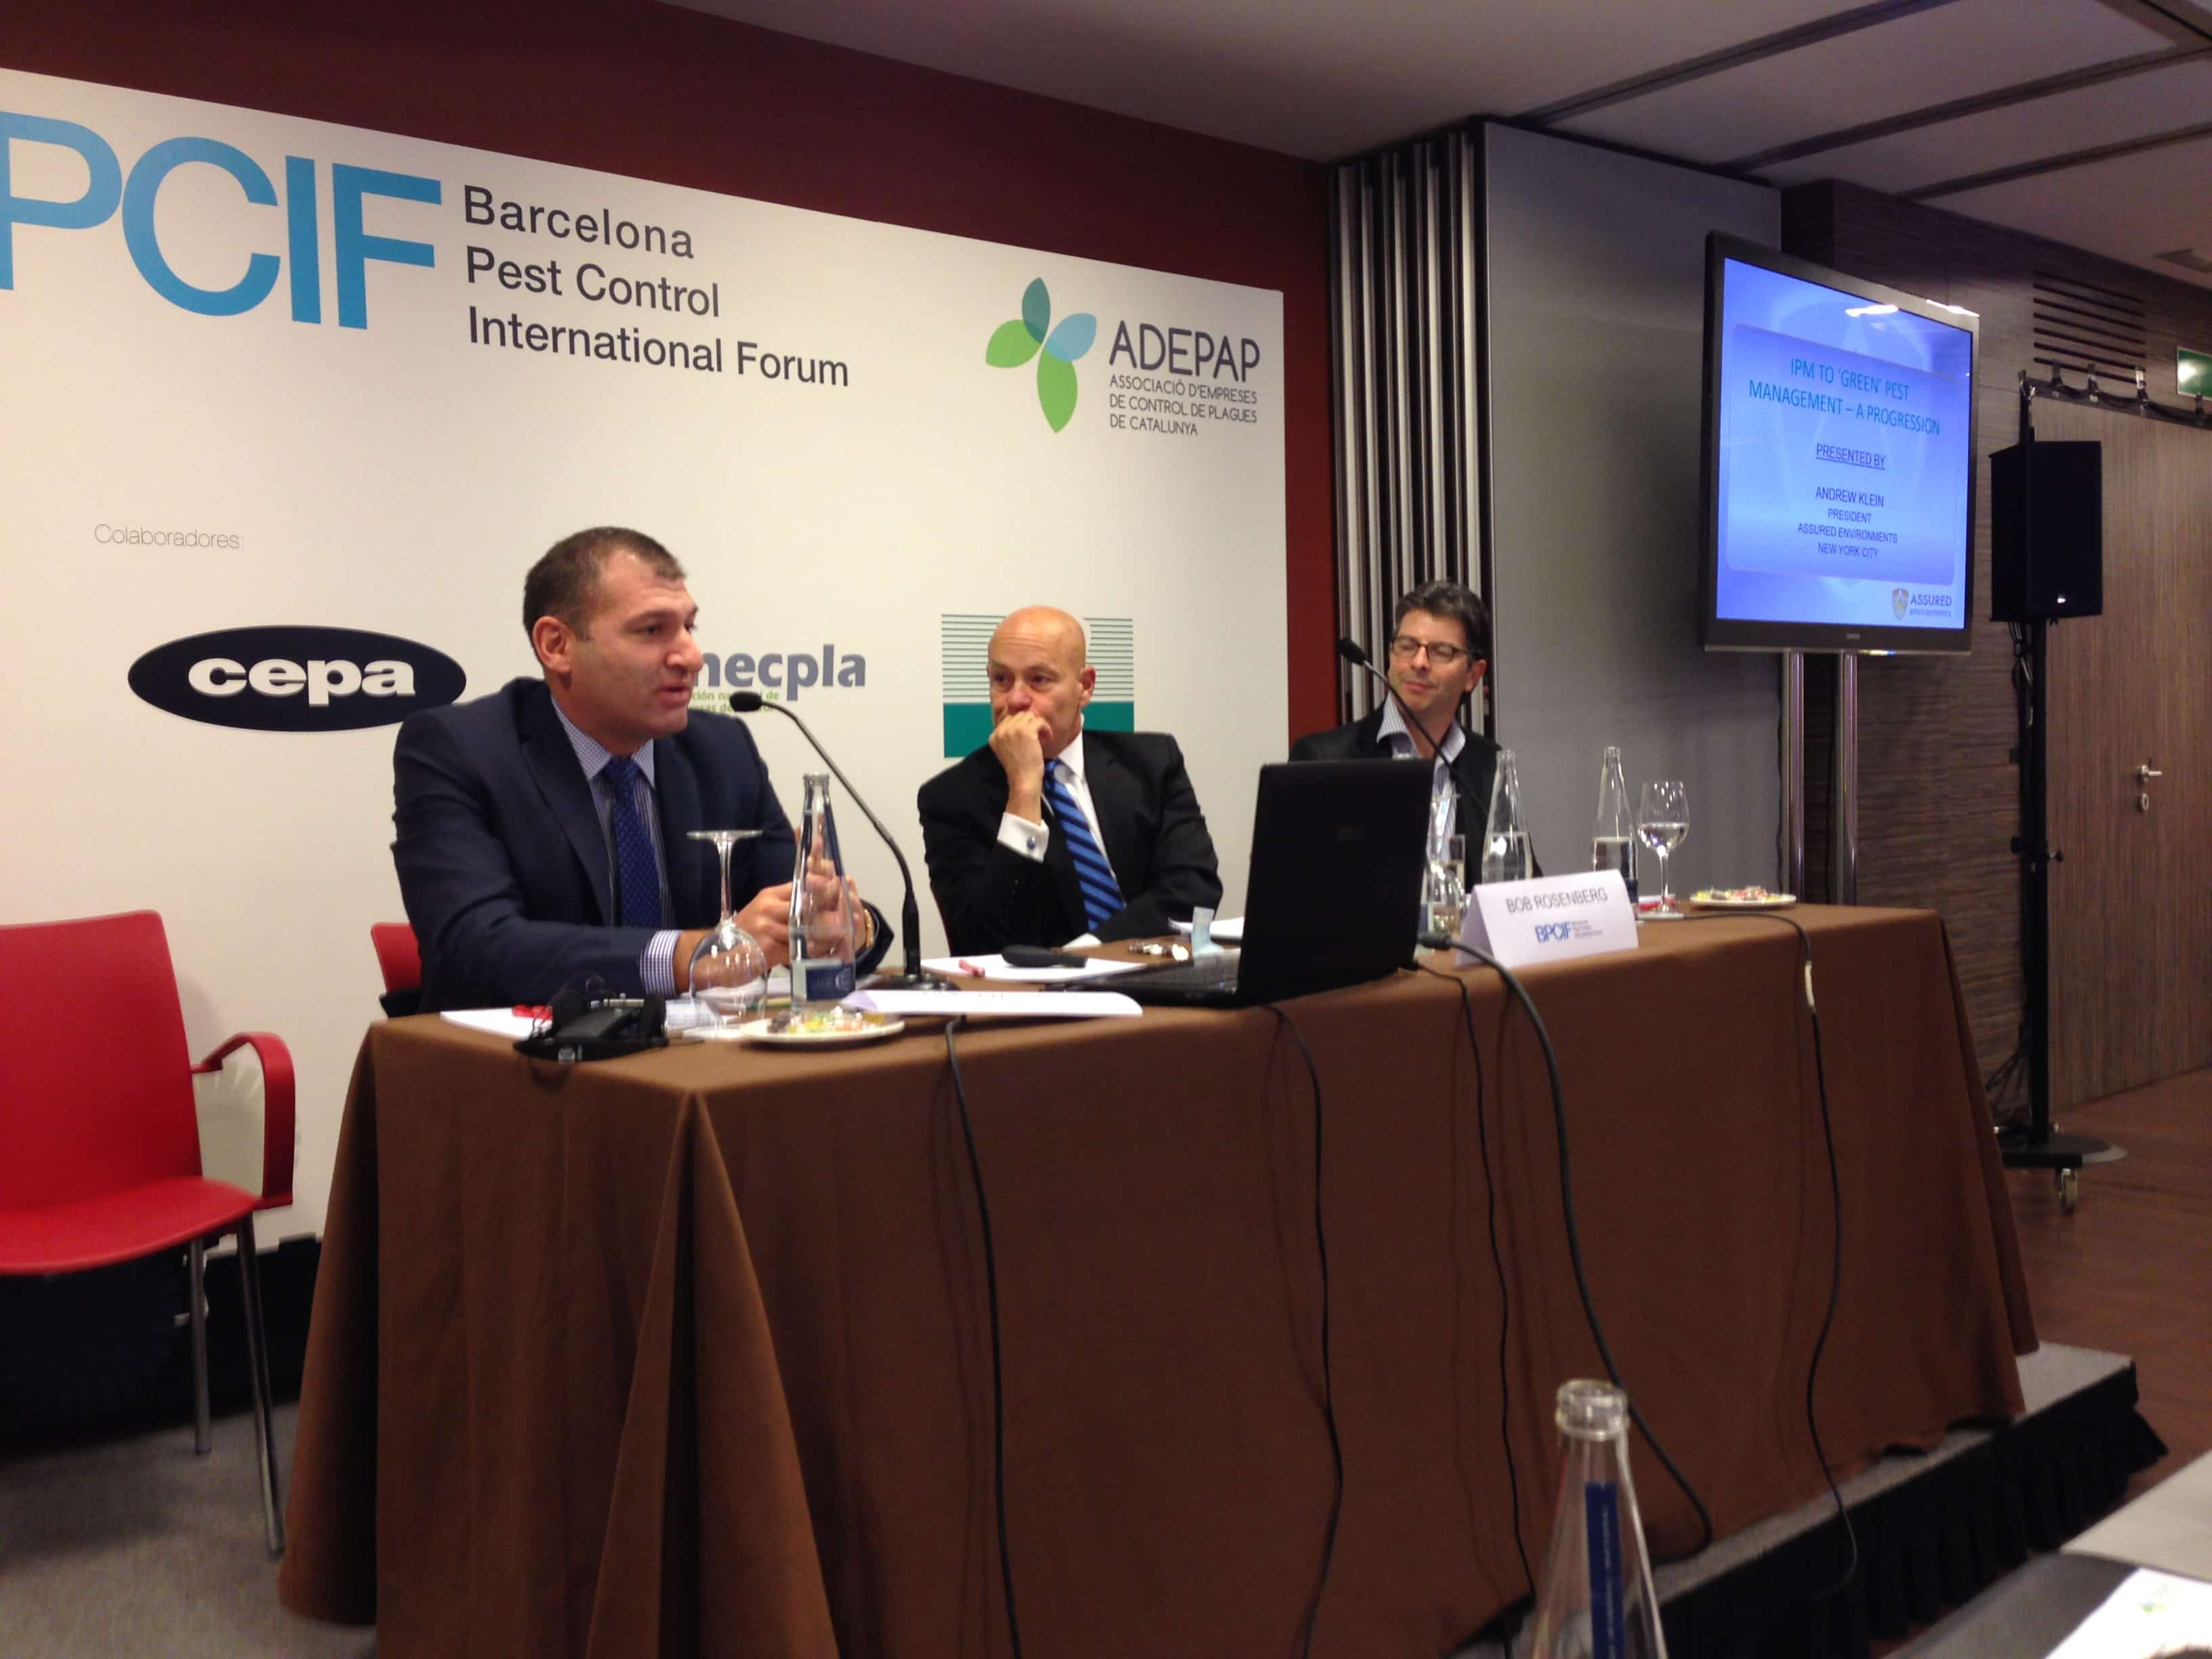 CEO Andrew Klein at the BPCIF in Barcelona